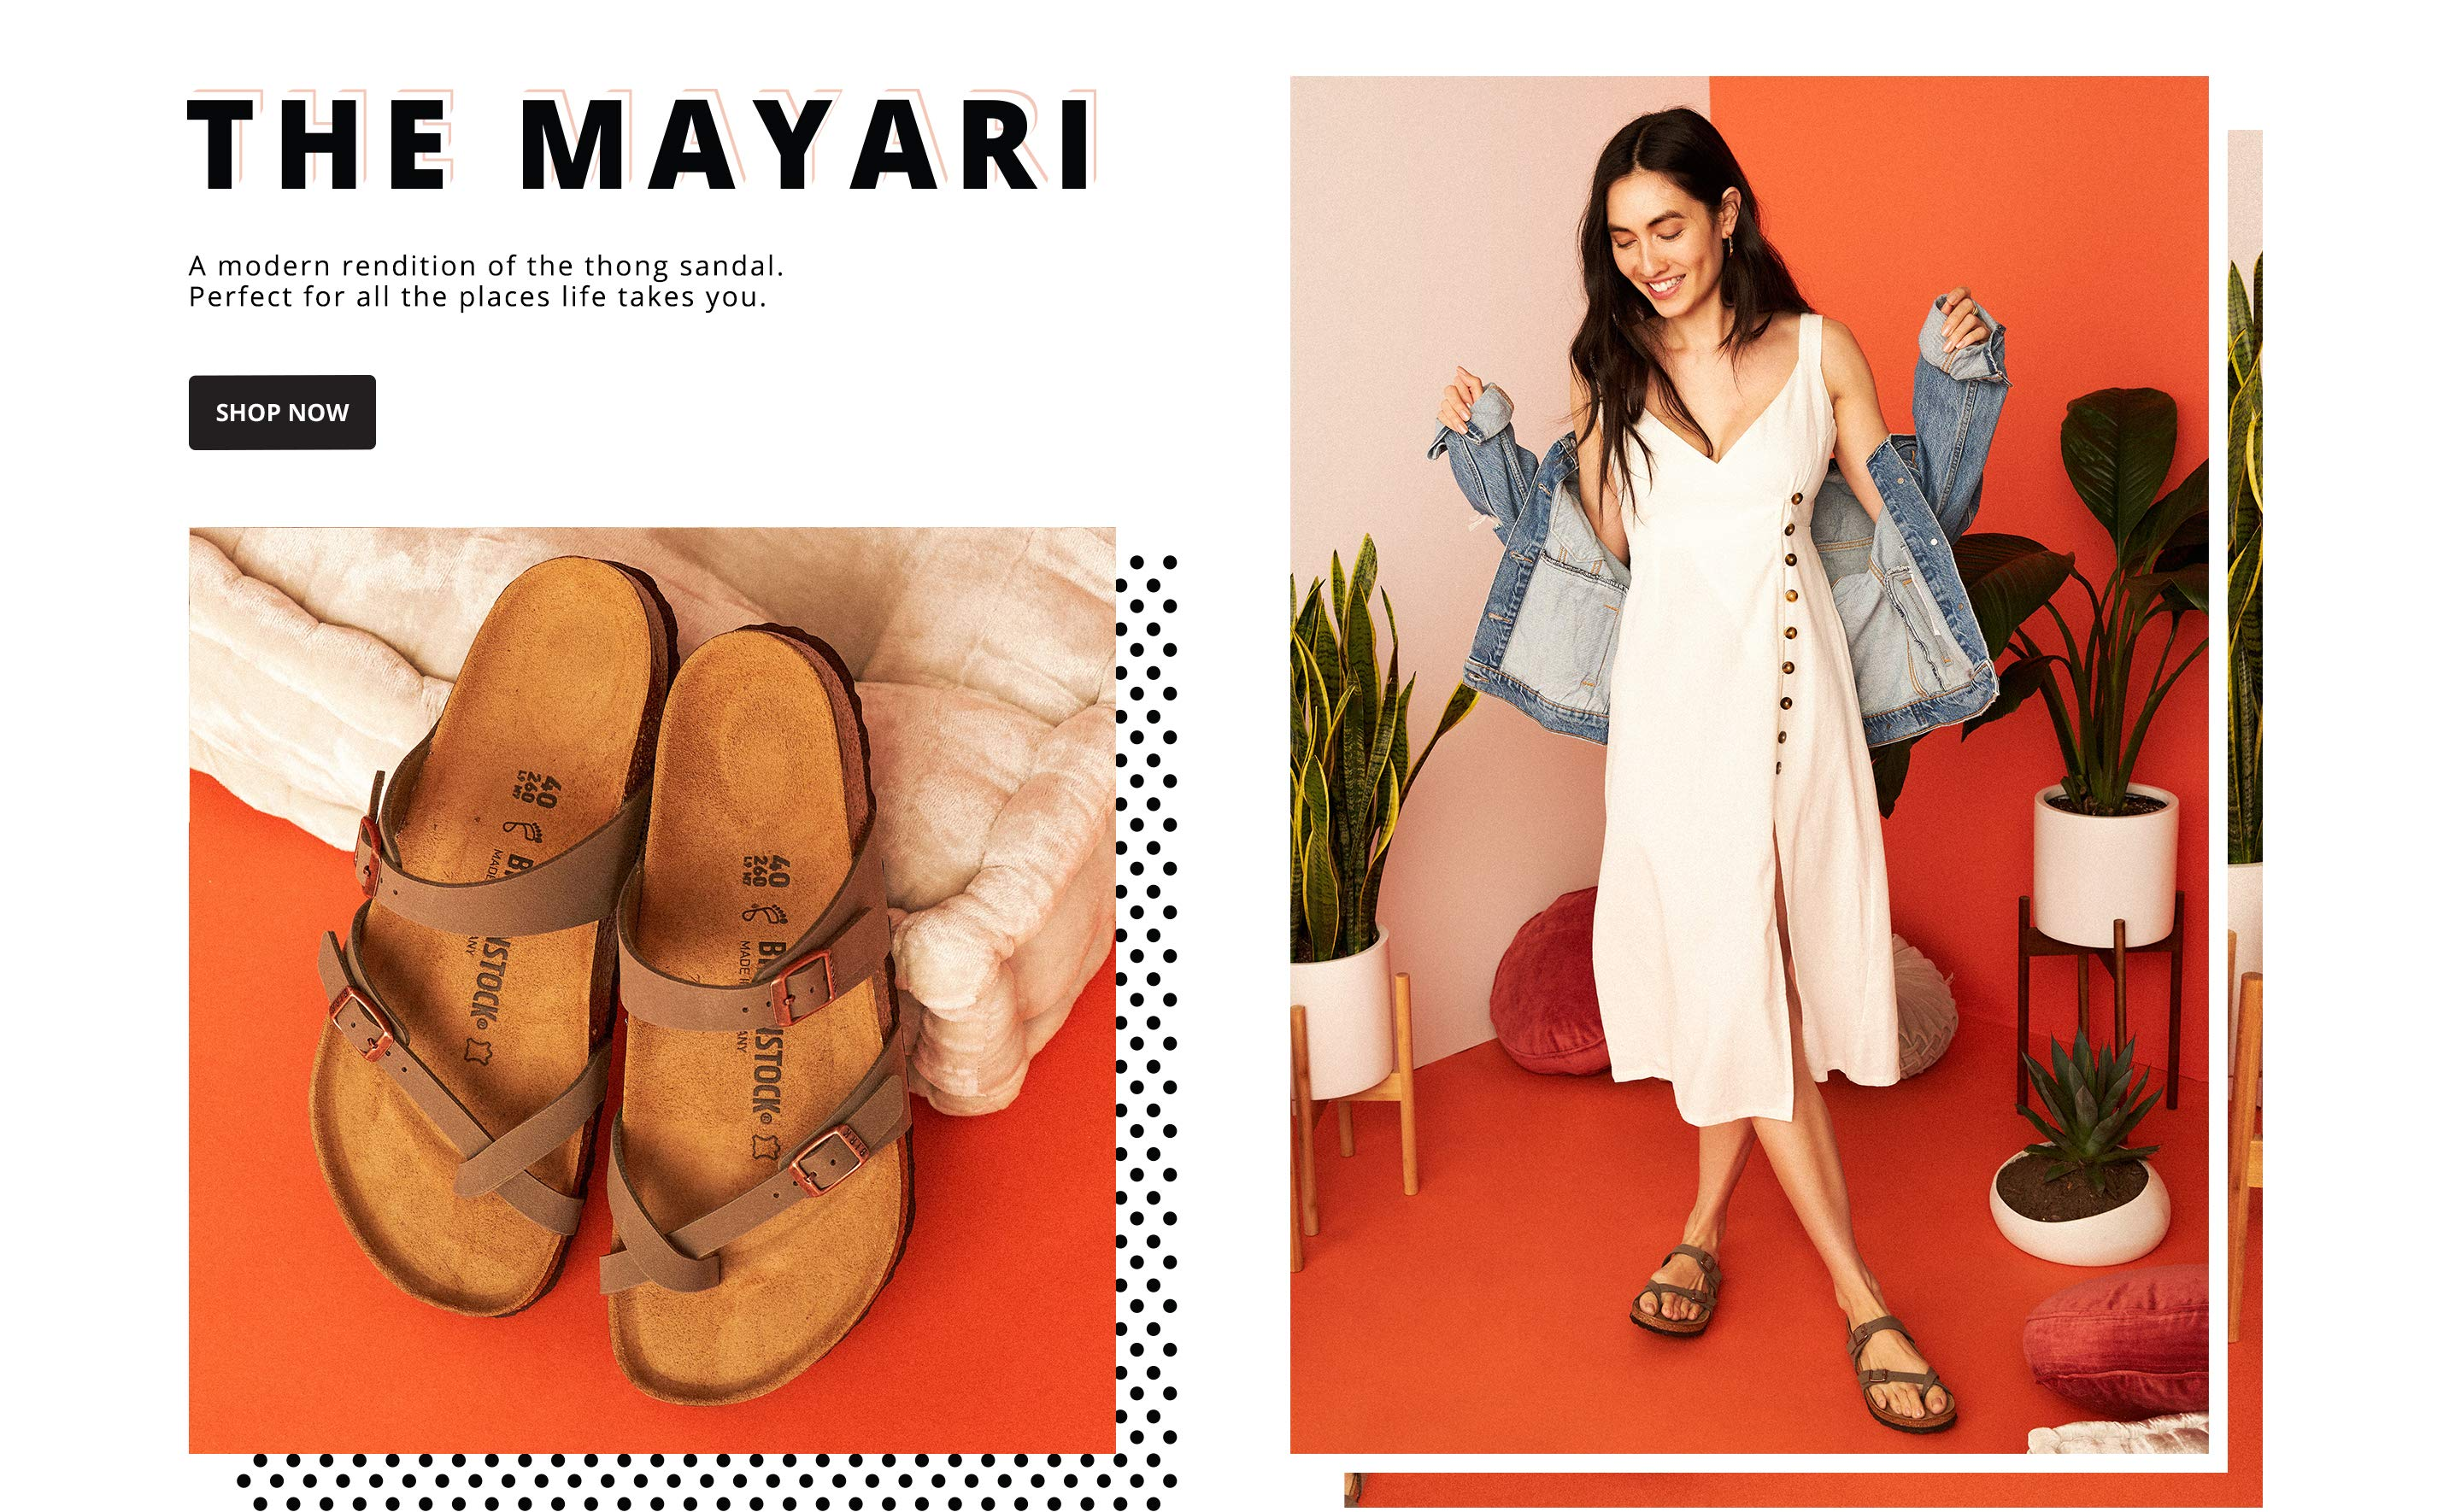 The Mayari. A modern rendition of the thong sandal. Perfect for all the places life takes you. SHOP NOW.